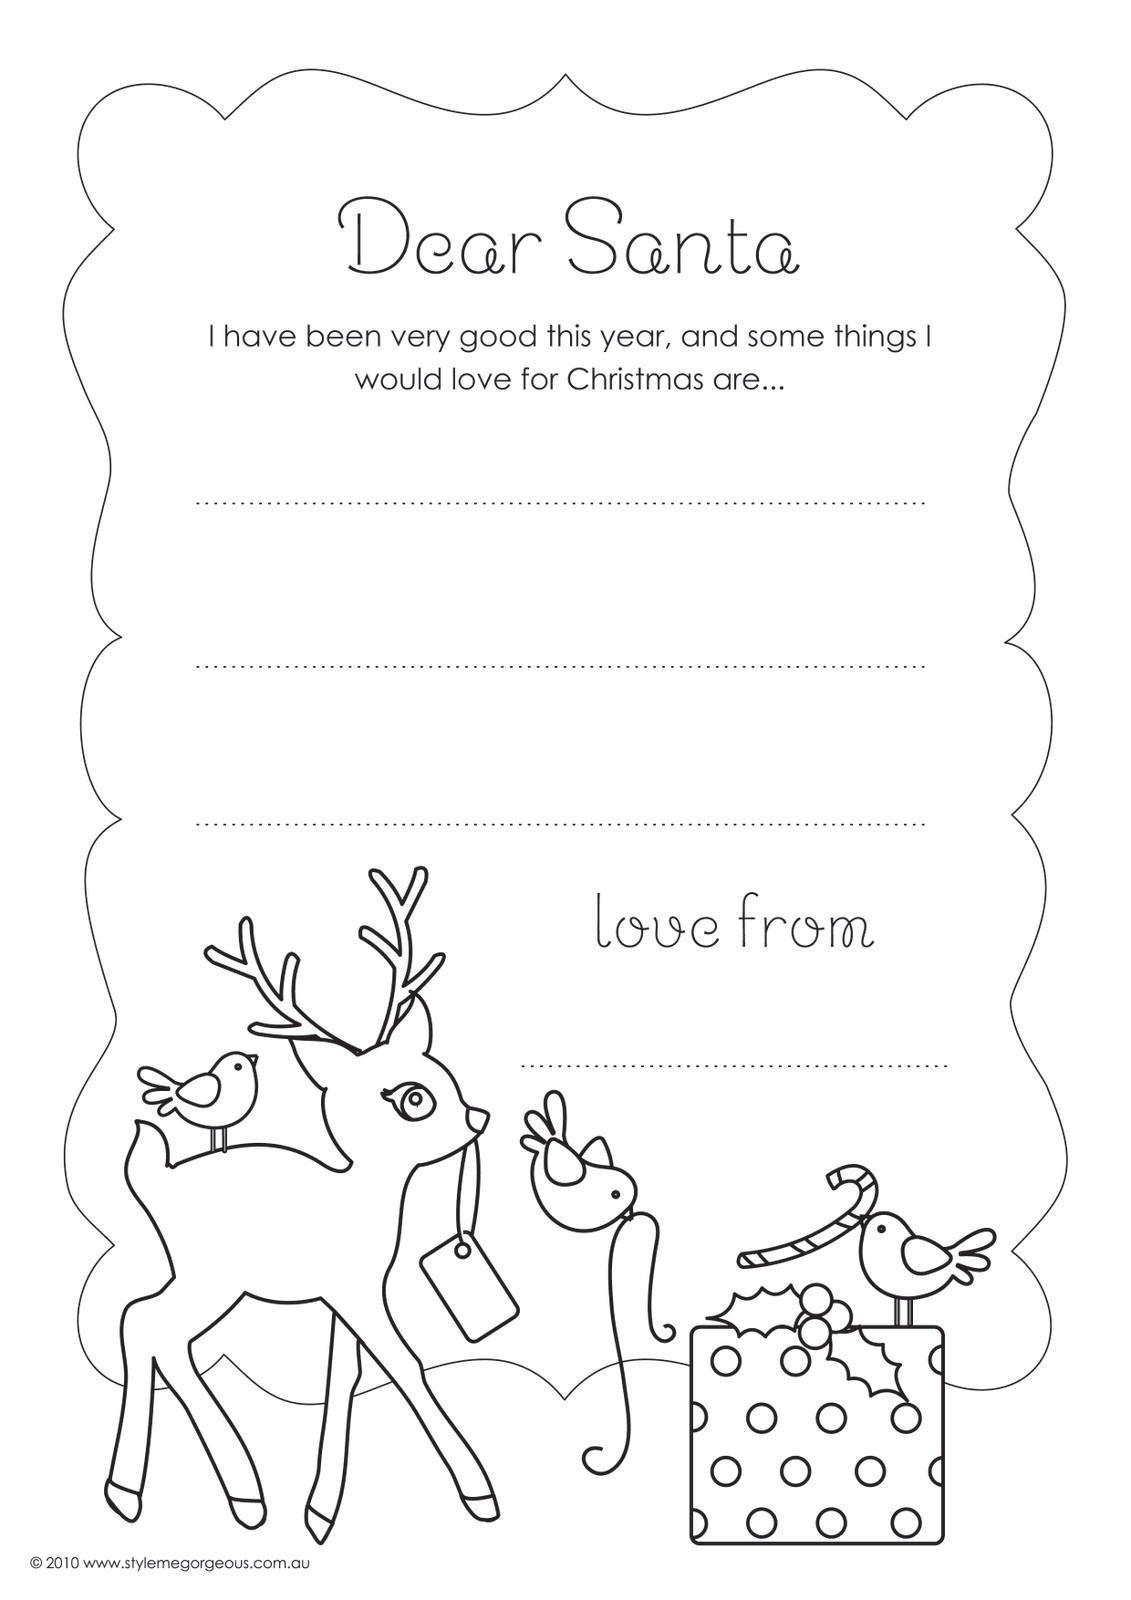 Dear Santa Coloring With Letter Page Fiscalreform